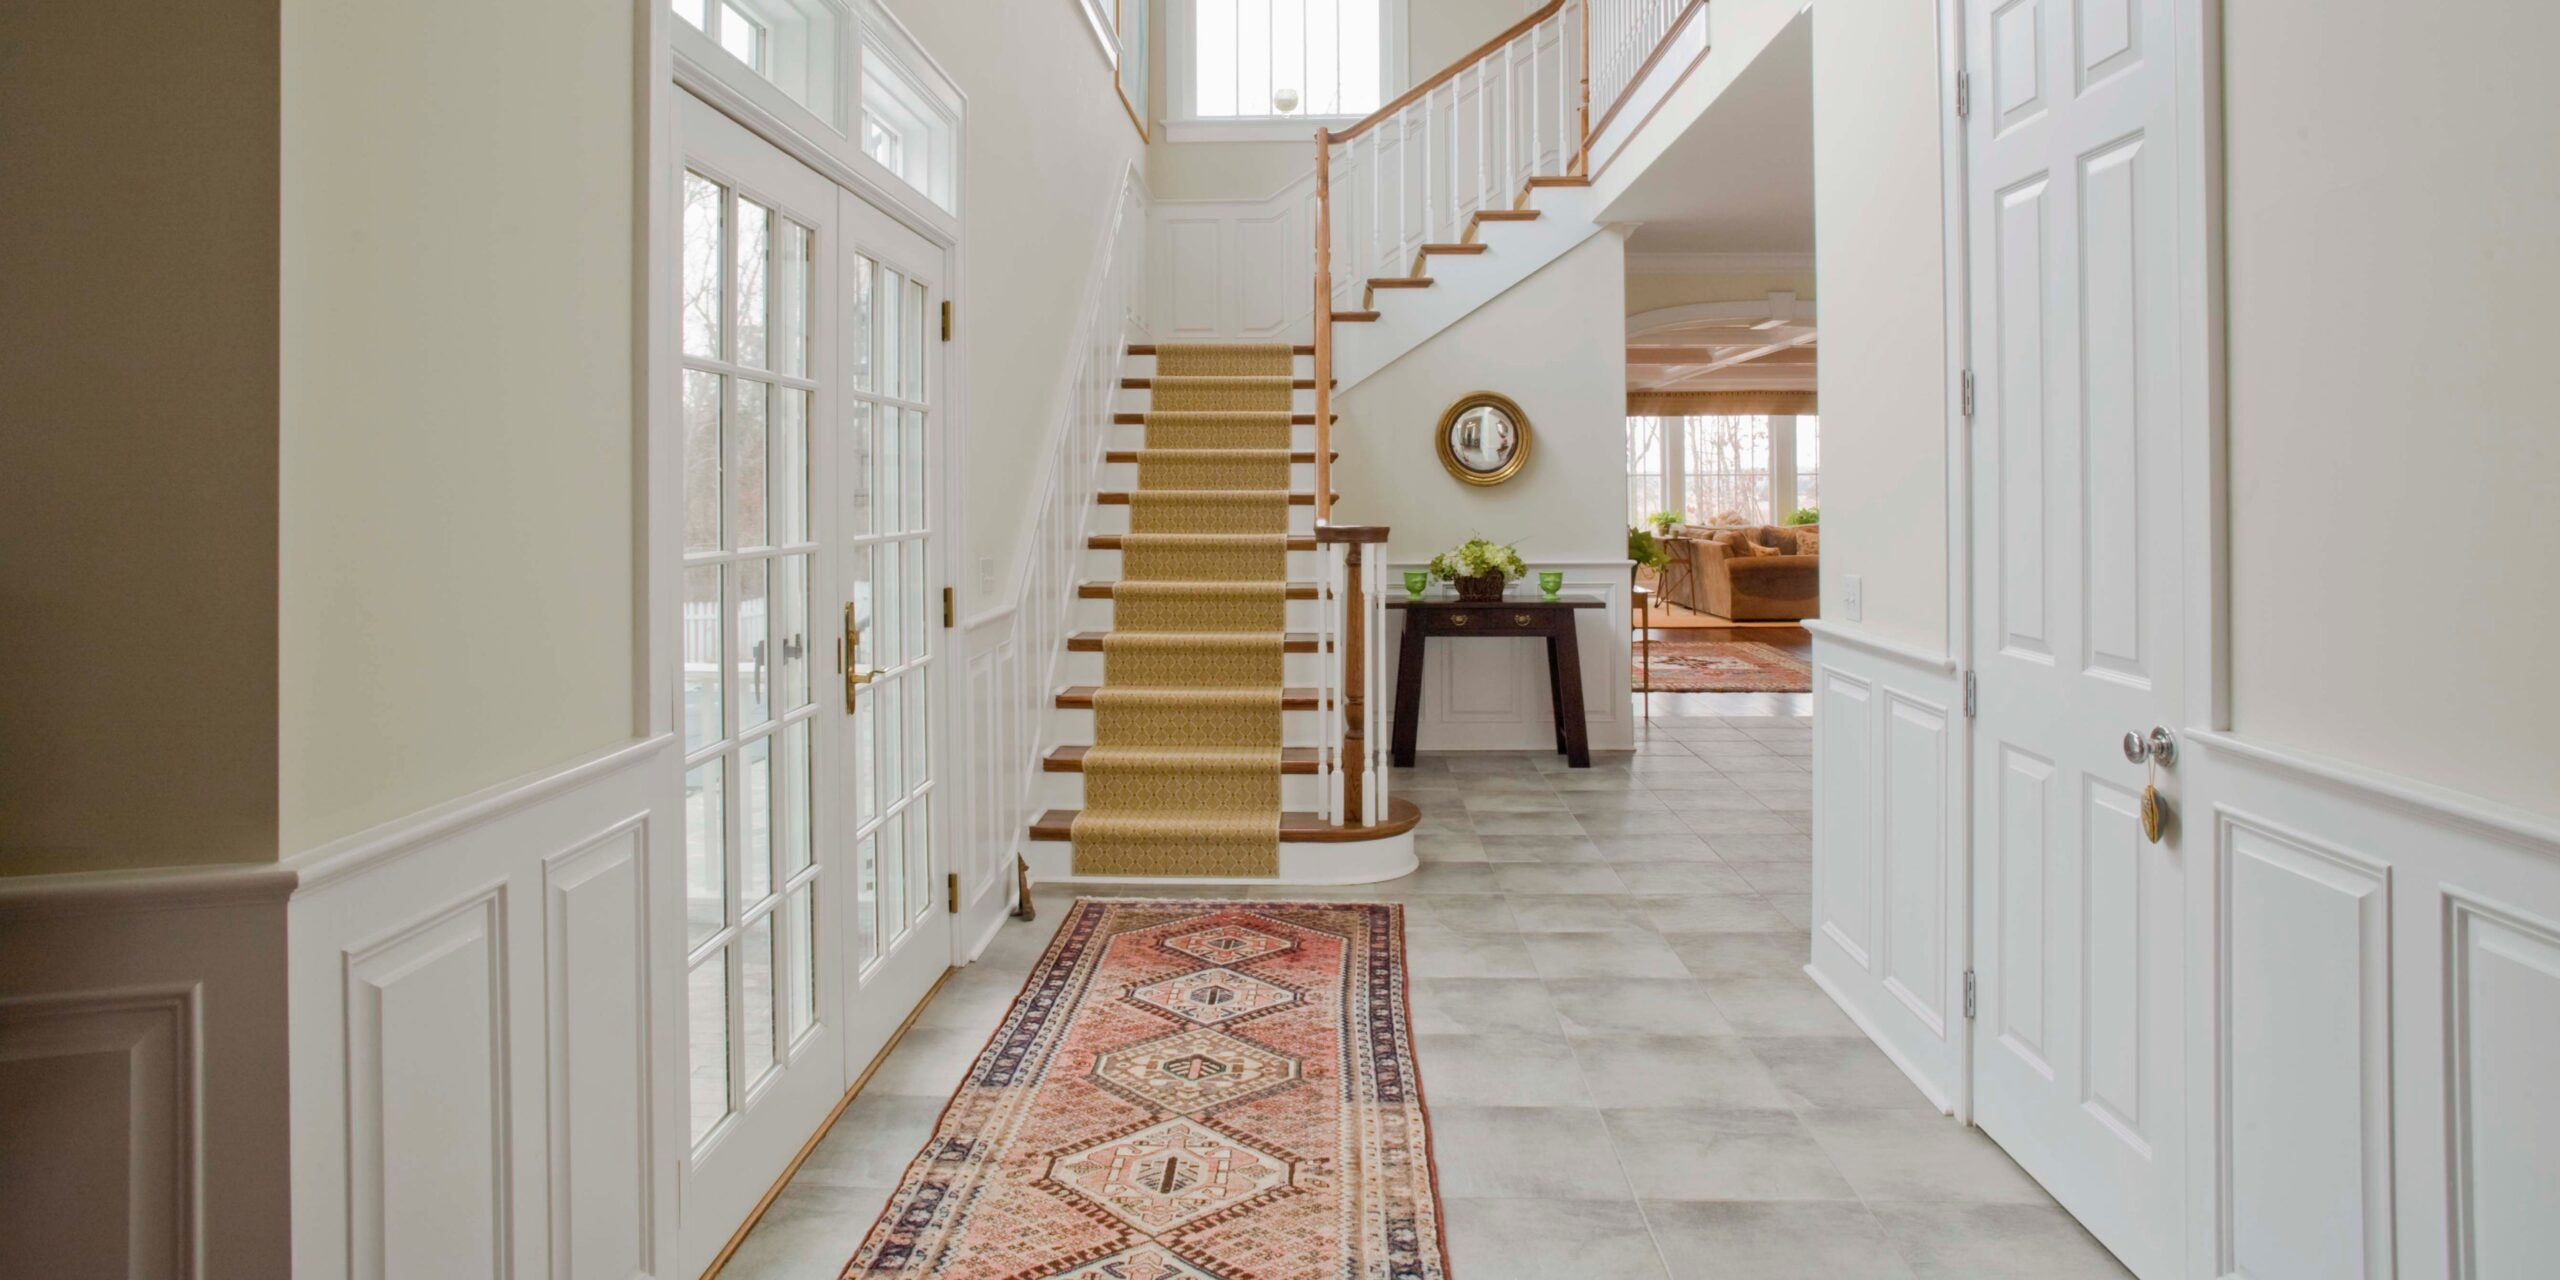 Keeping Your Temporary Housing Entryway Clean